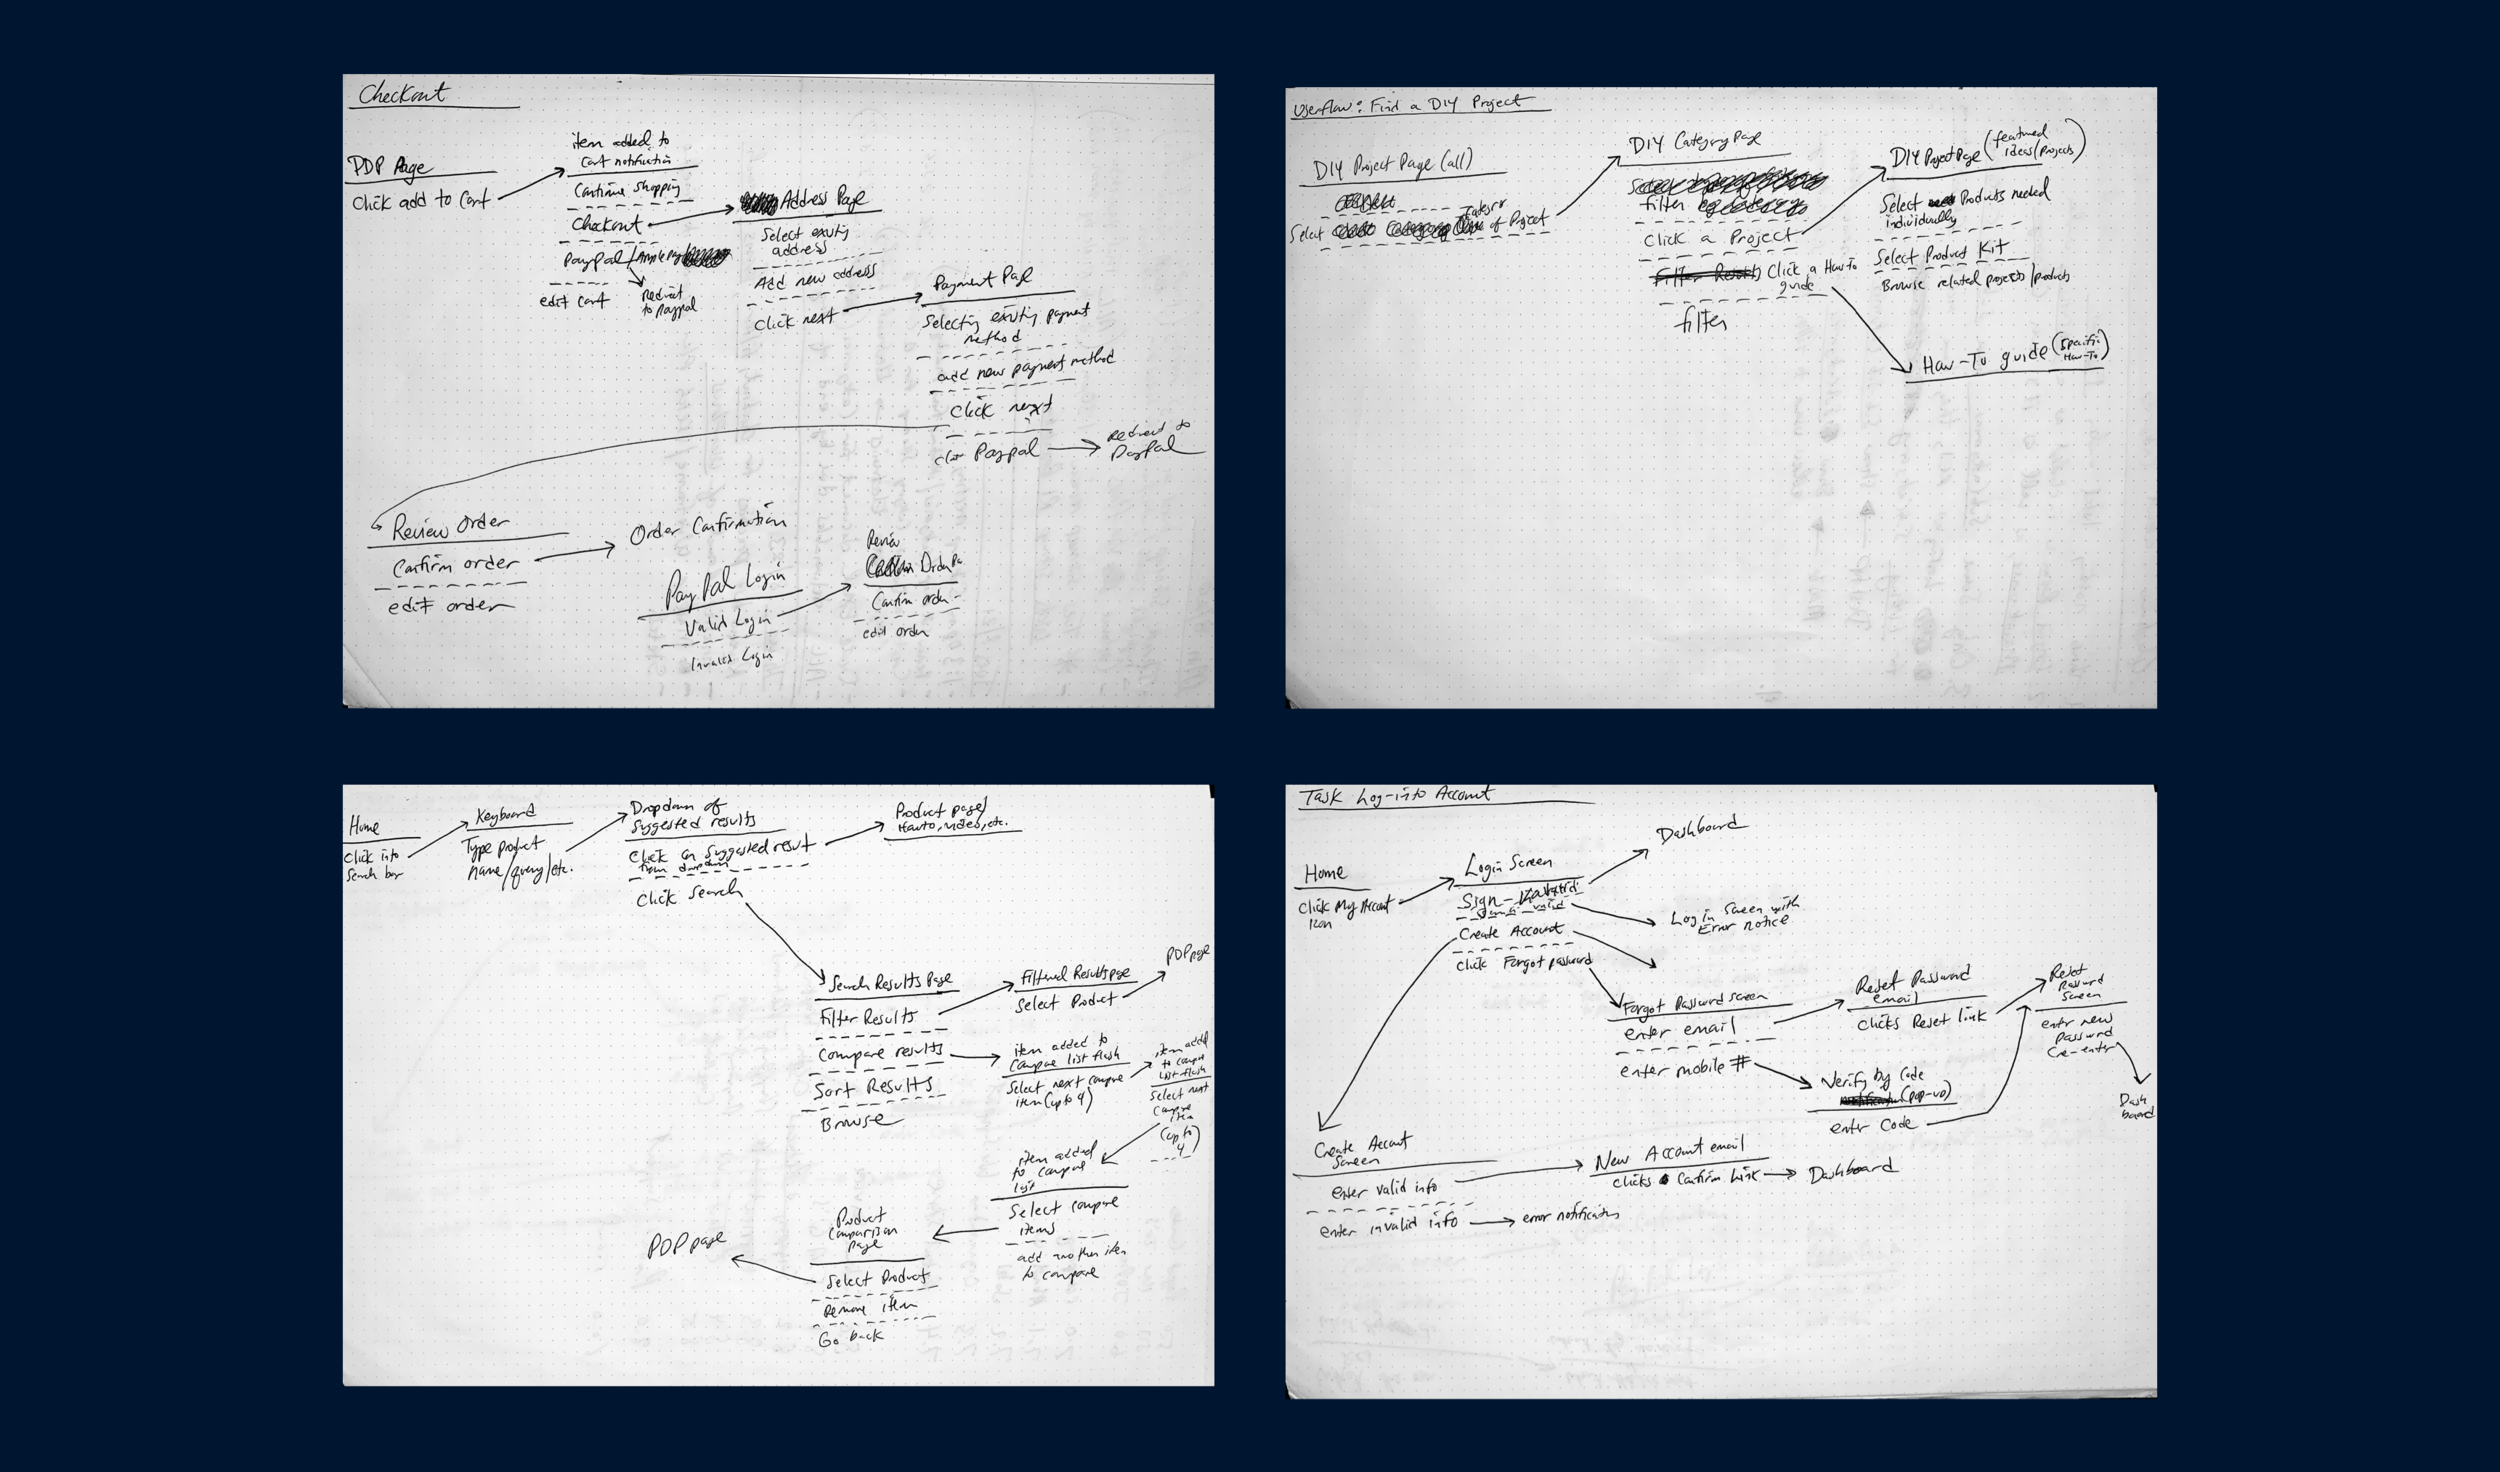 Initial user flow sketches determined from user goals in the personas.  1. Checkout (returning customer/new customer  2. Search for a product  3.Find a DIY Project  4. Log-In Account